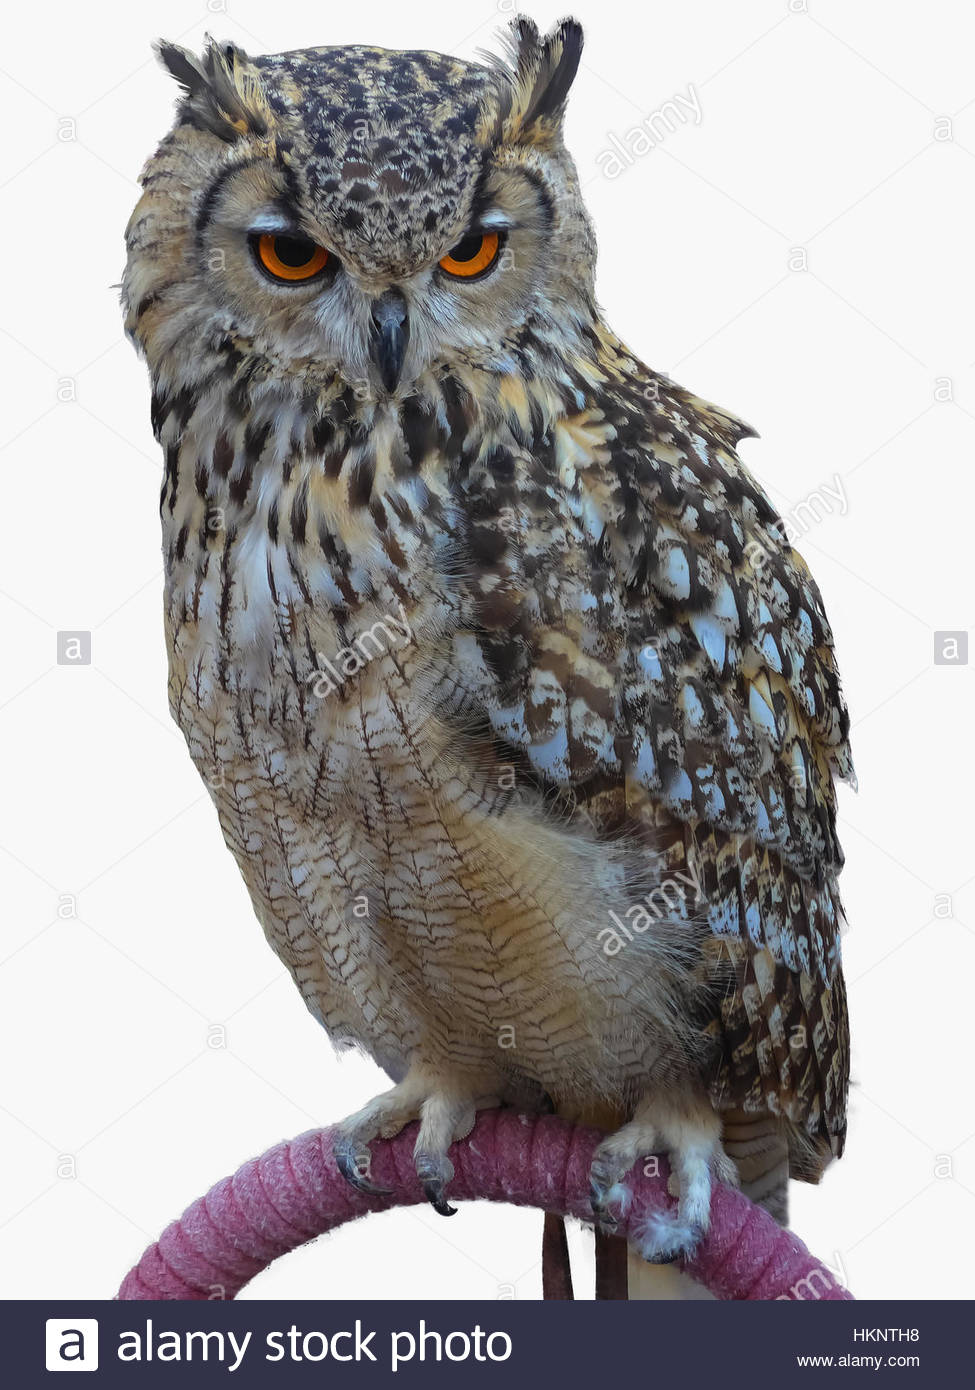 A big royal owl isolated on whte background. - Stock Image